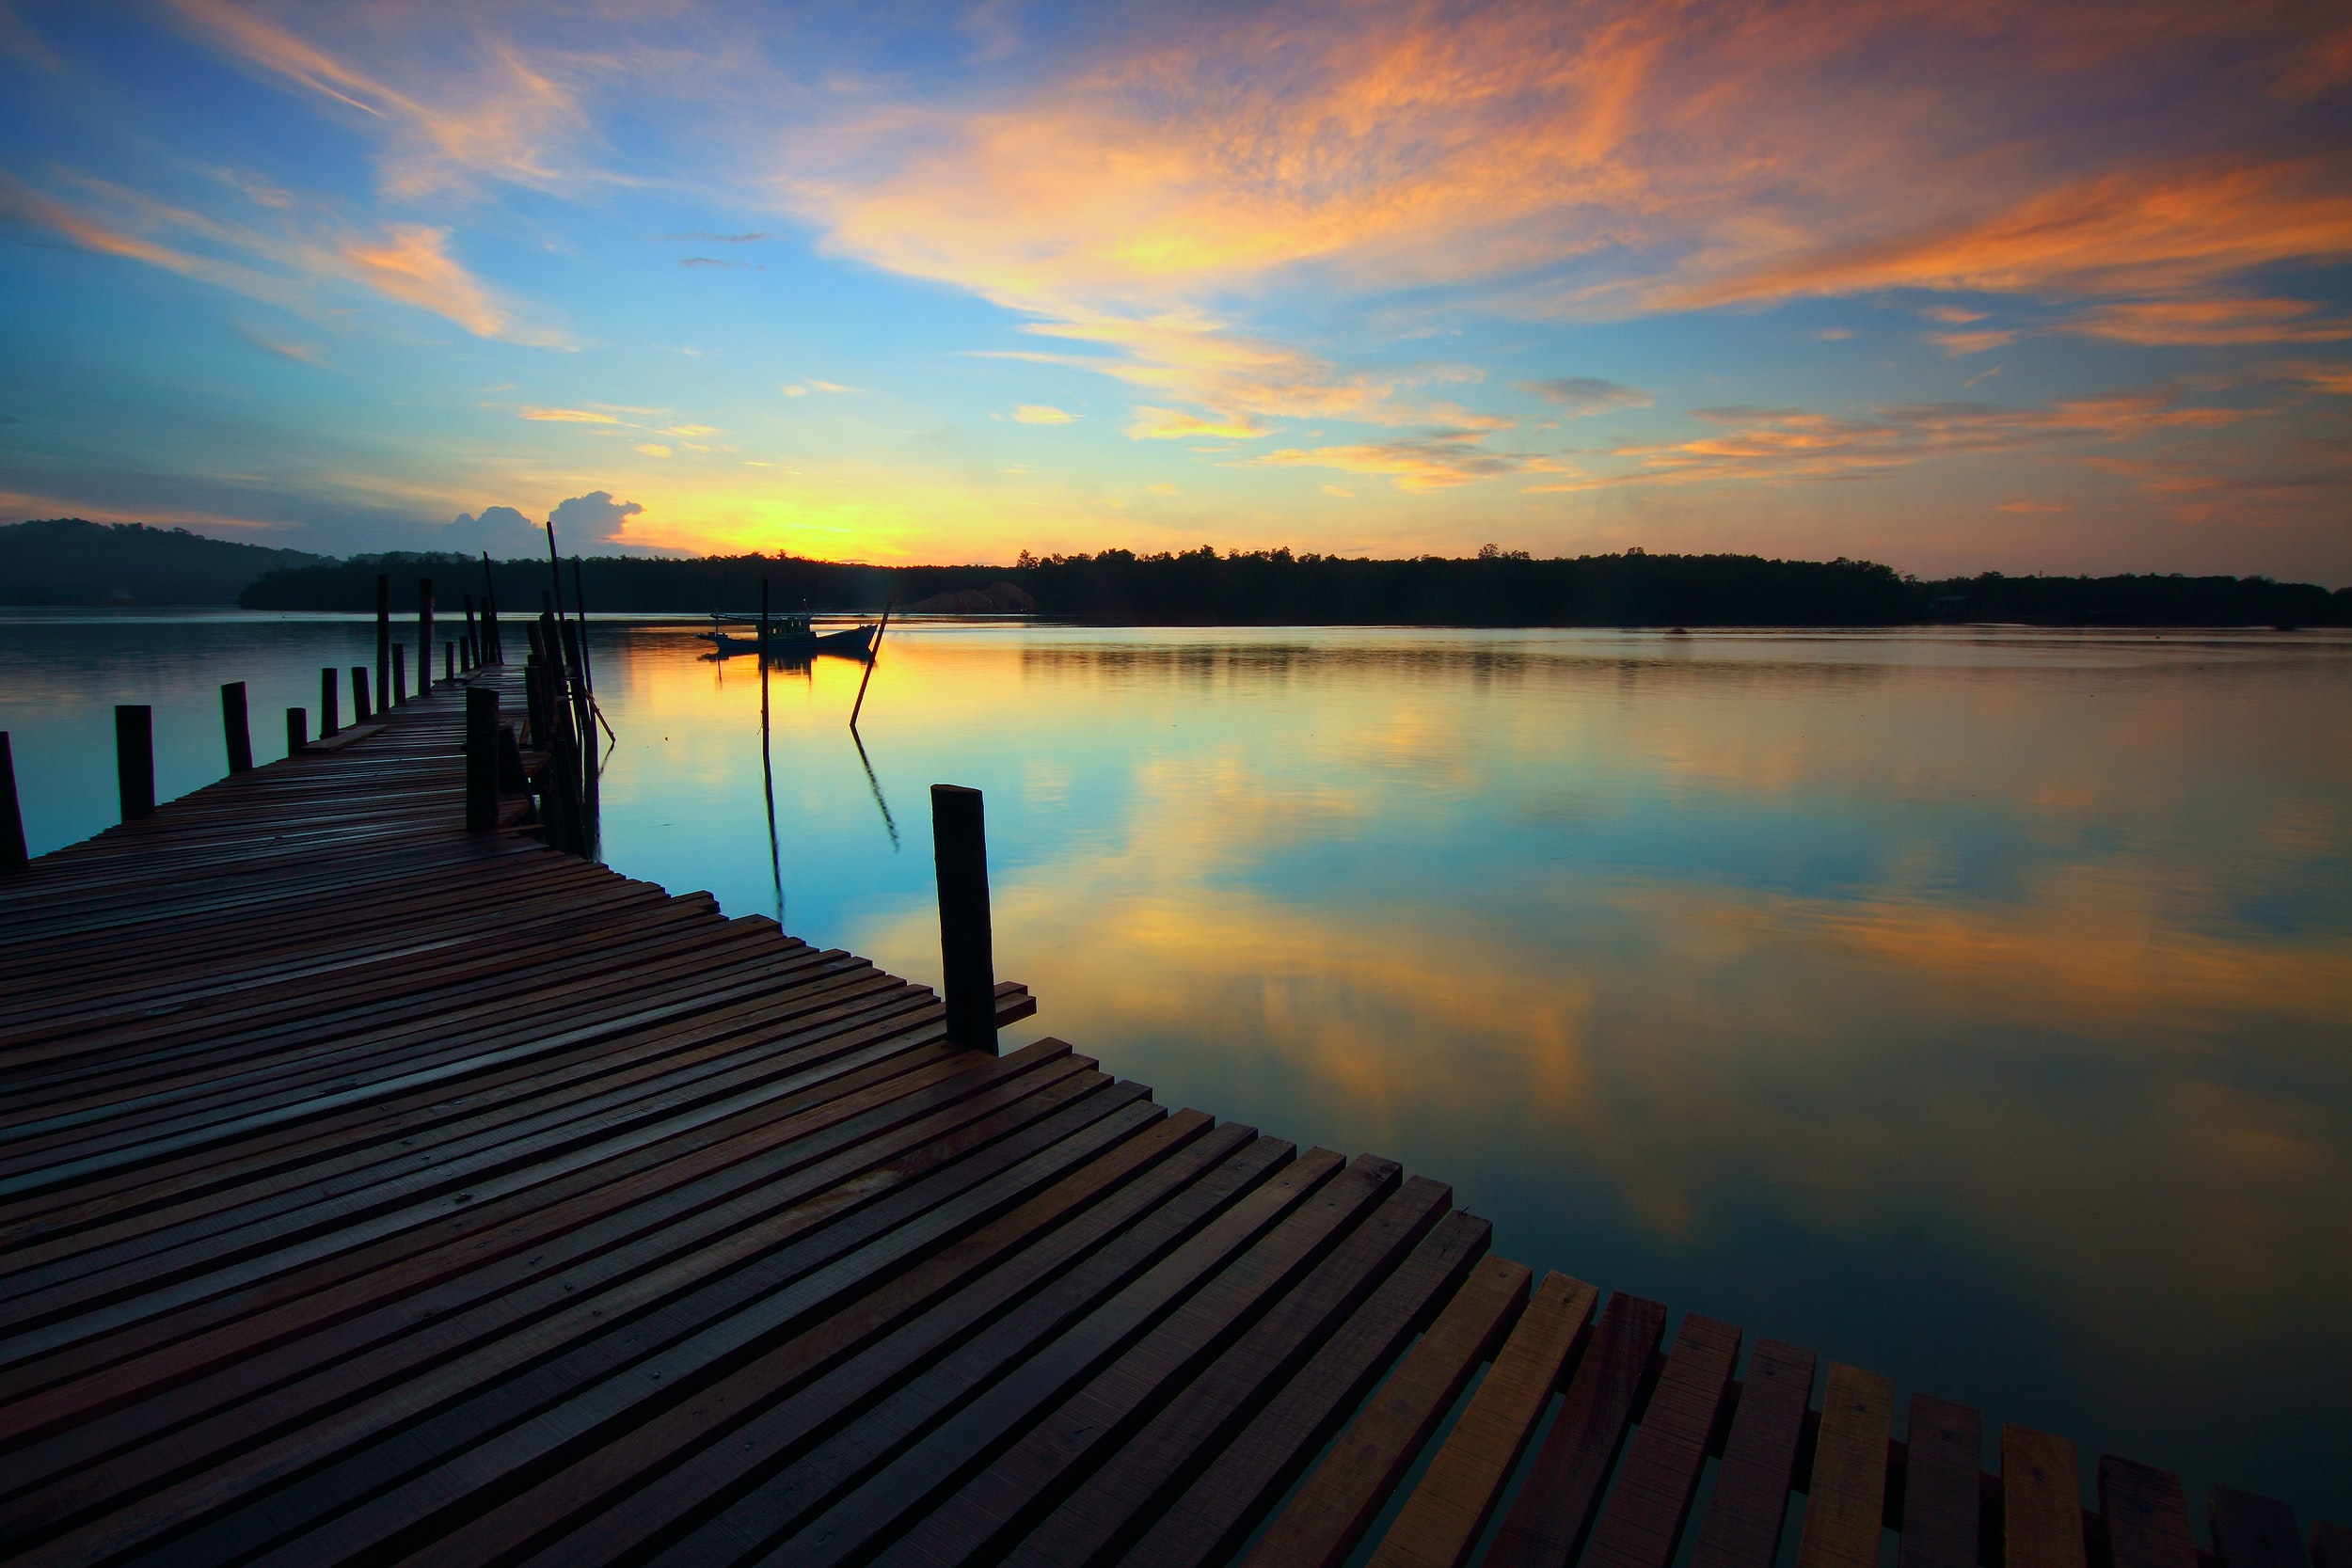 Brown Wooden Dock, Dawn, Reflection, Water, Trees, HQ Photo